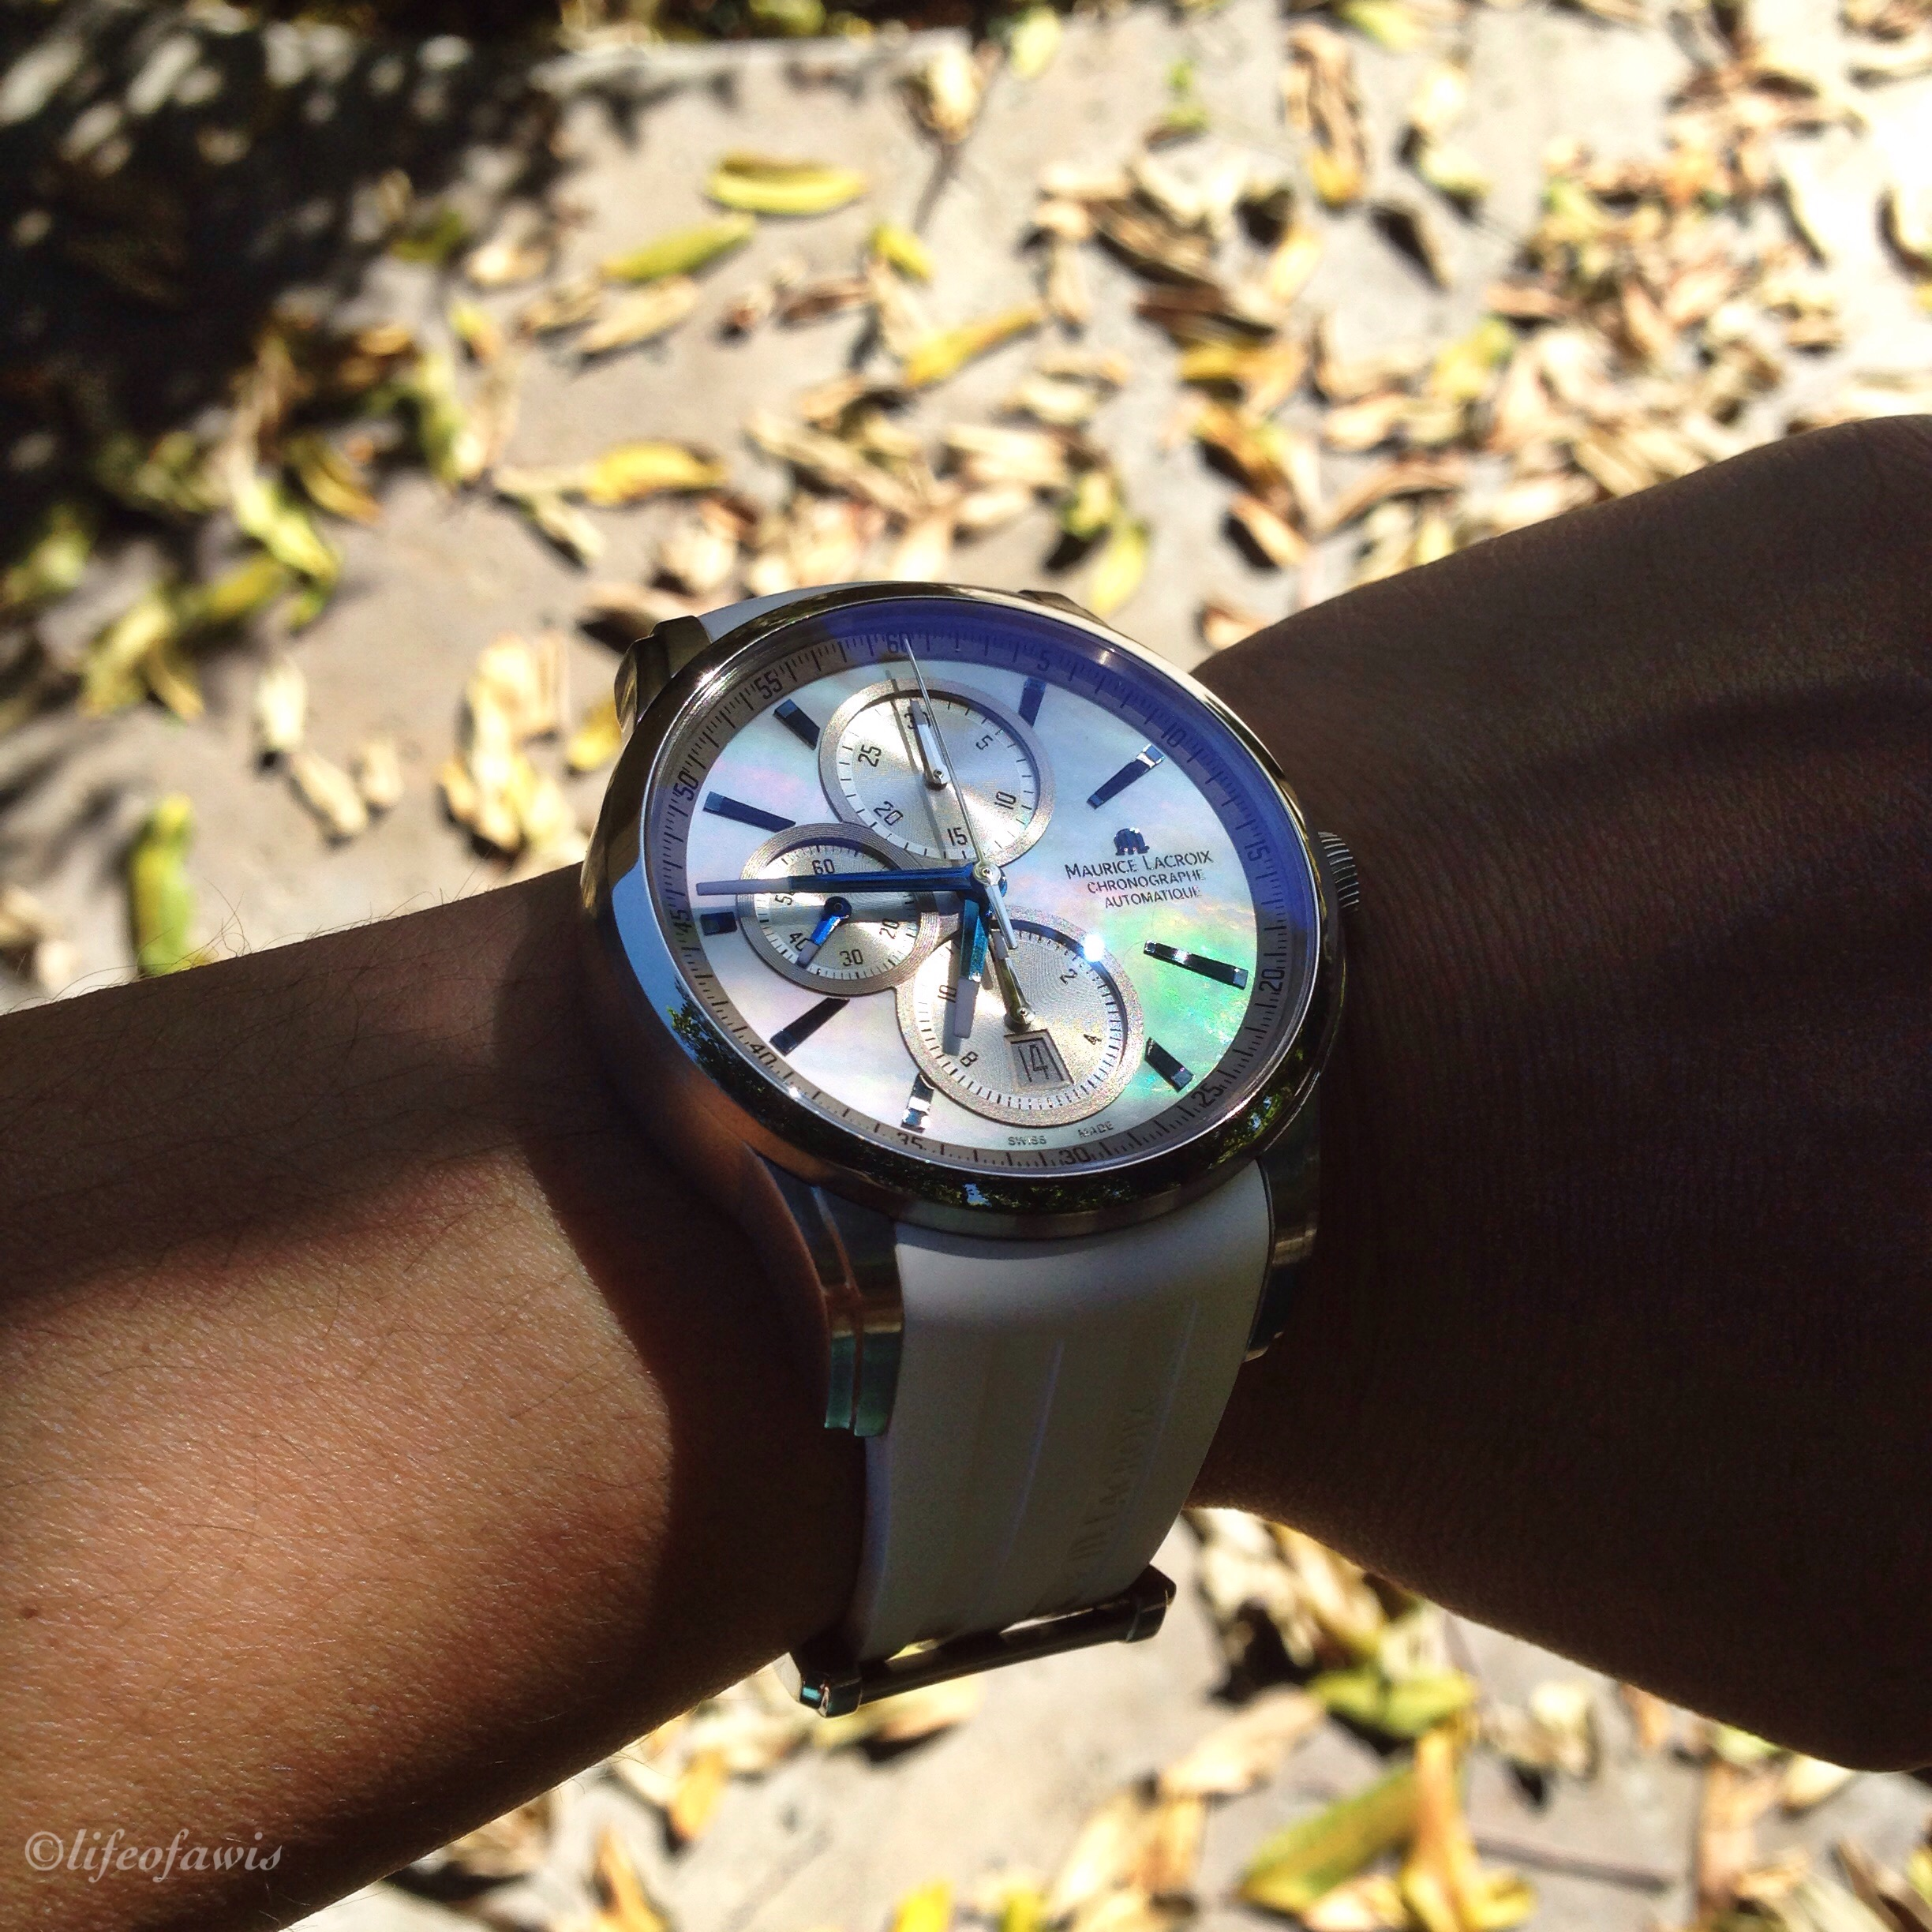 This shot shows off the beautiful mother-of-pearl dial perfectly.